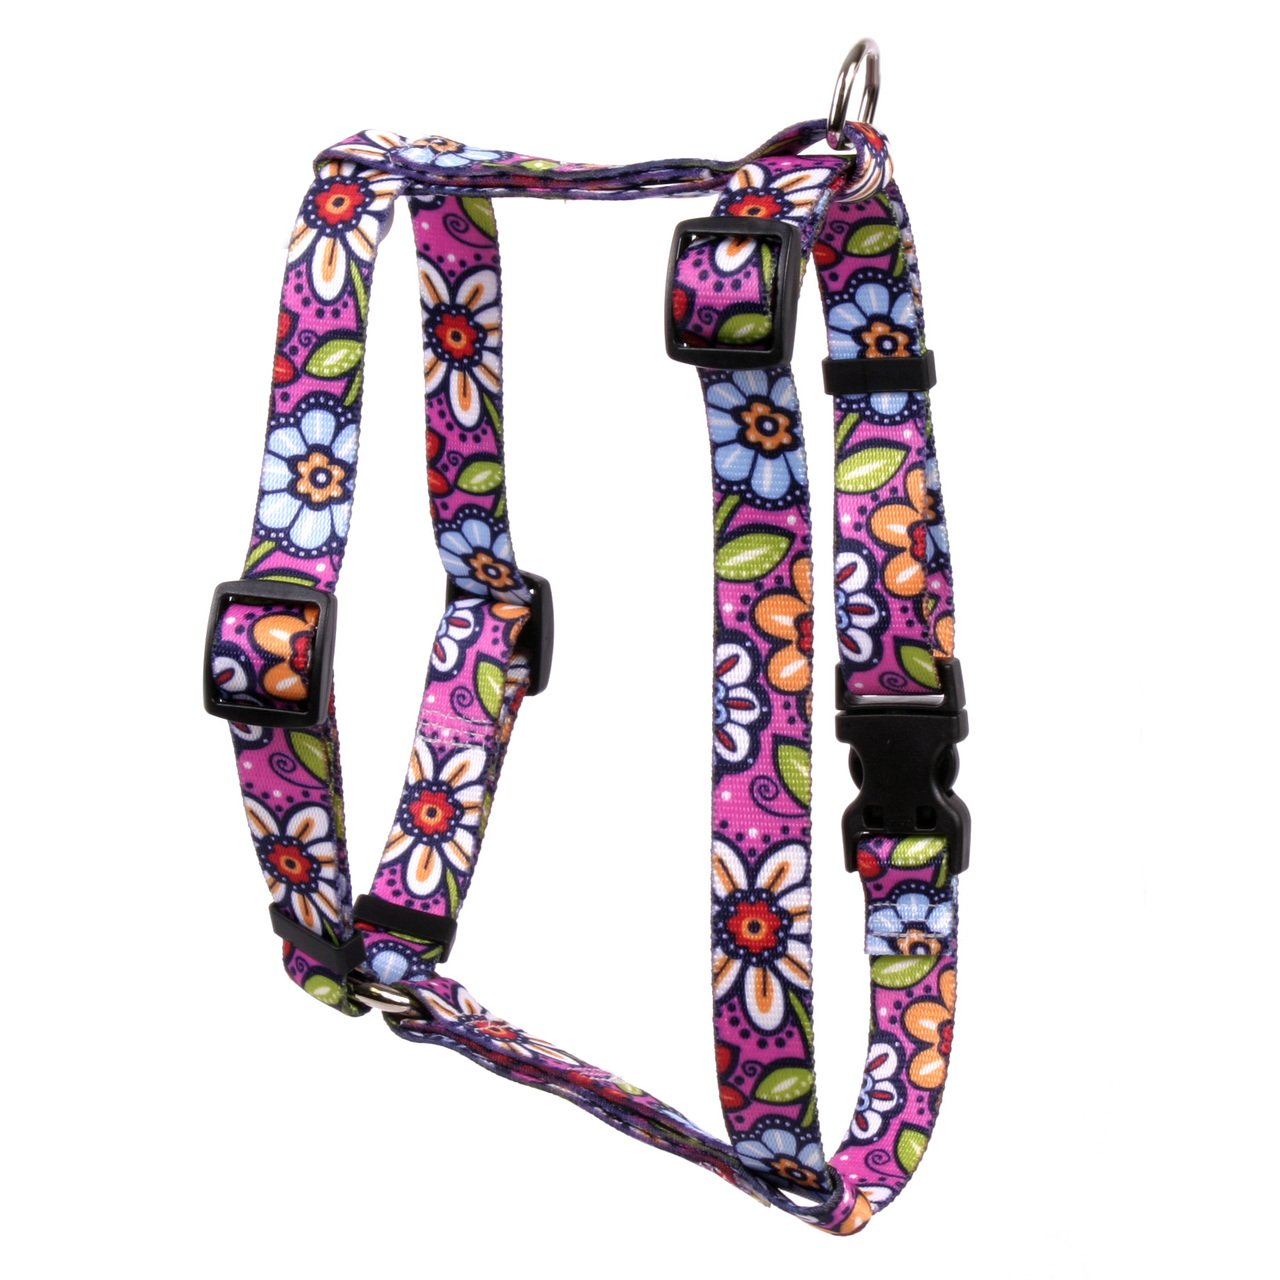 Yellow Dog Design Pink Garden Roman Style H Dog Harness, X-Small-3/8 Wide and fits Chest of 8 to 14'' by Yellow Dog Design